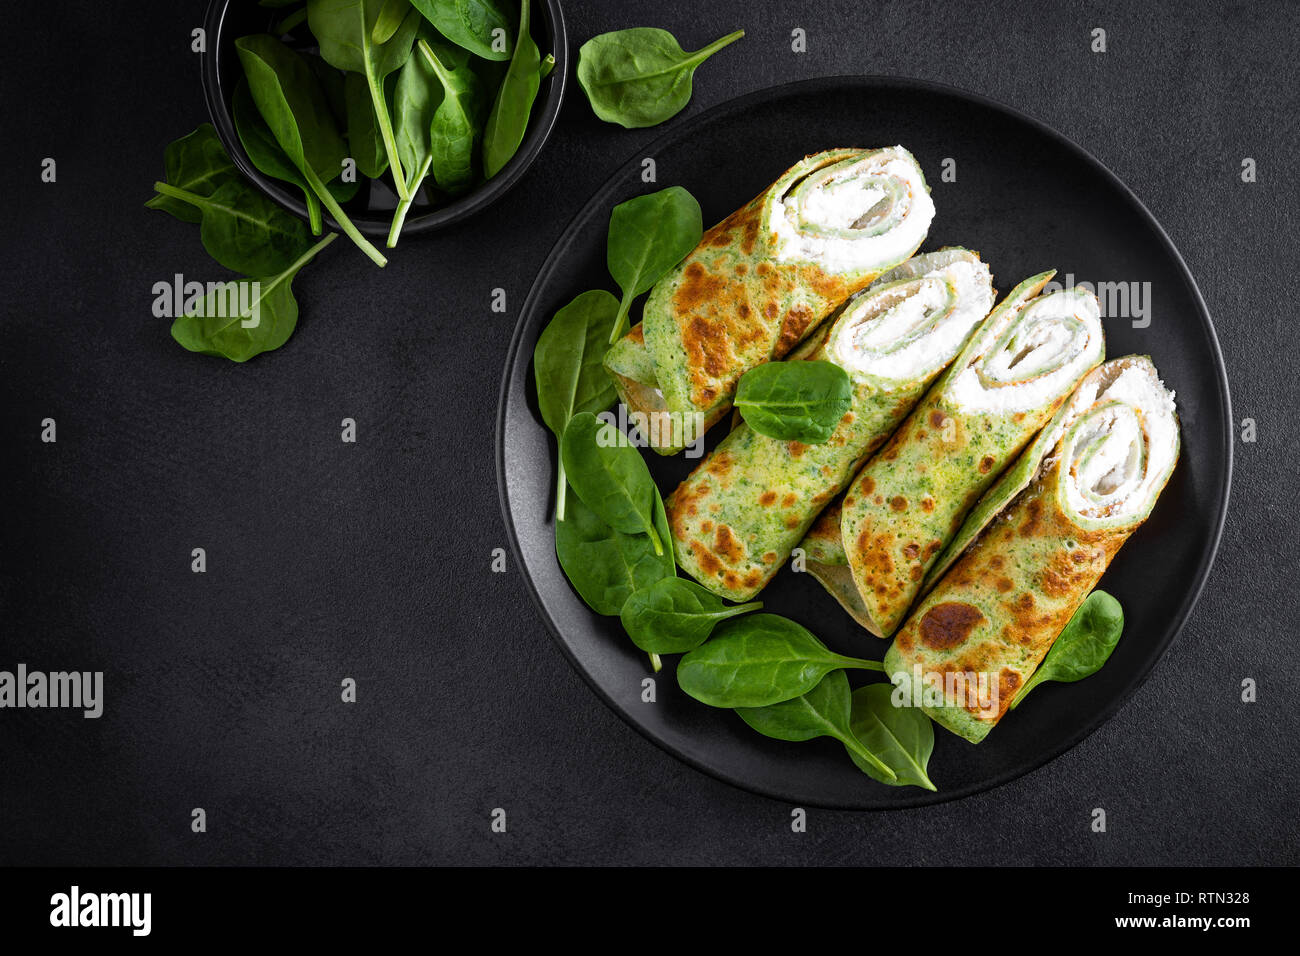 Savory crepes with spinach and feta cheese on black background, top view - Stock Image